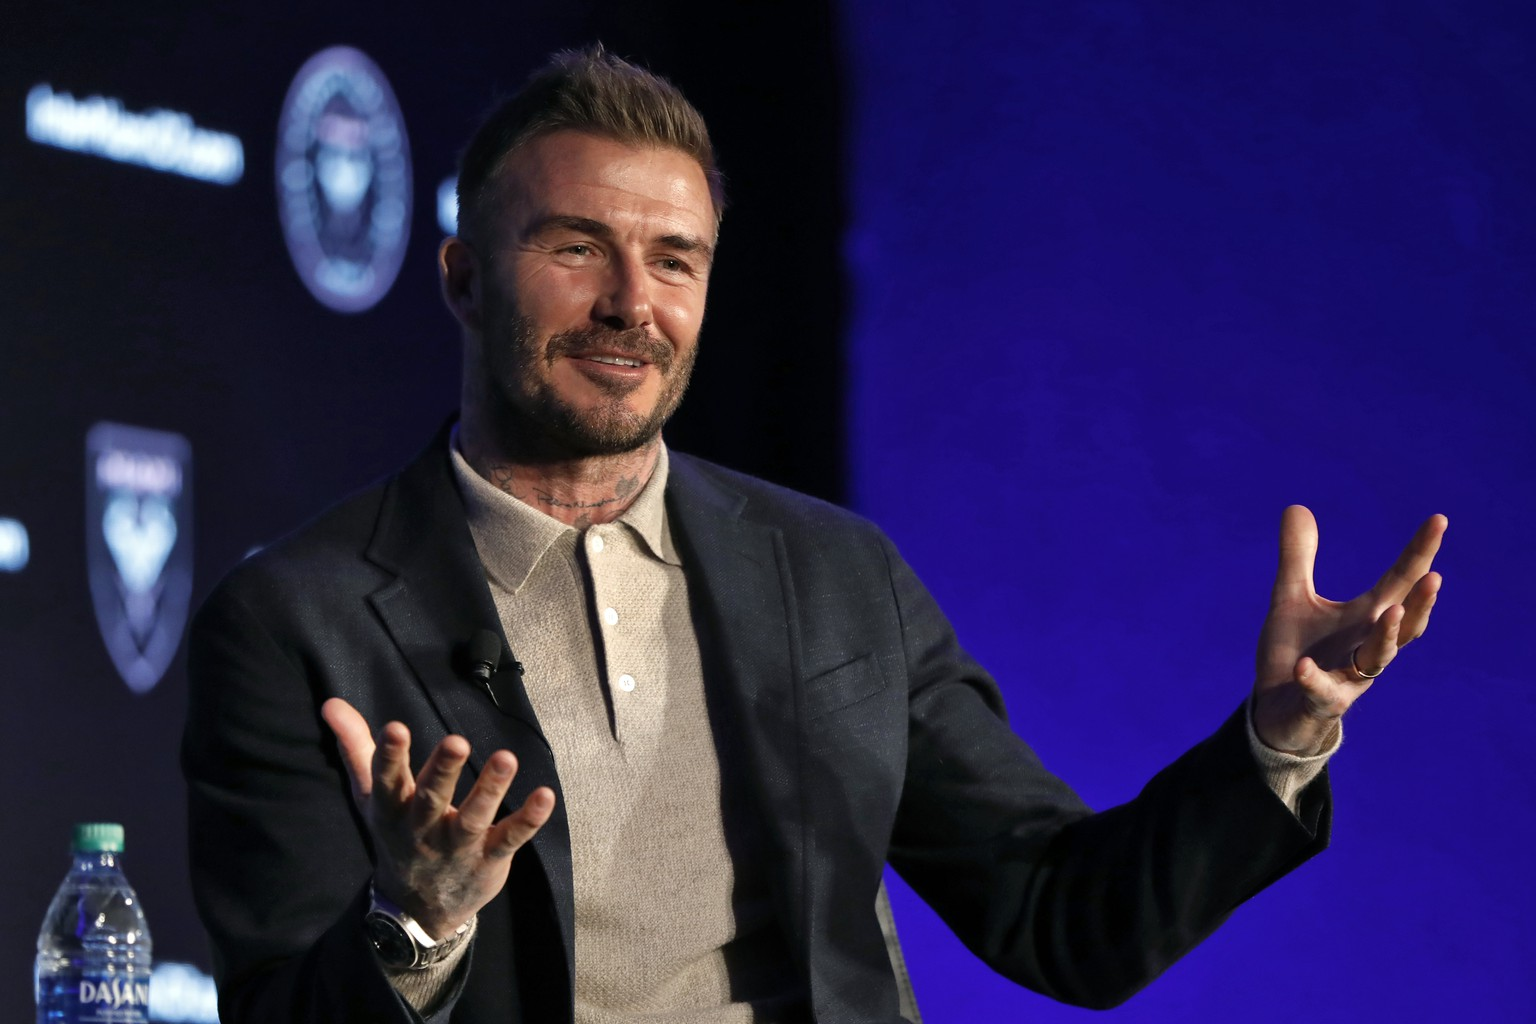 David Beckham, Inter Miami CF co-owner, is interviewed during the Major League Soccer 25th Season kickoff event in New York, Wednesday, Feb. 26, 2020. (AP Photo/Richard Drew) David Beckham